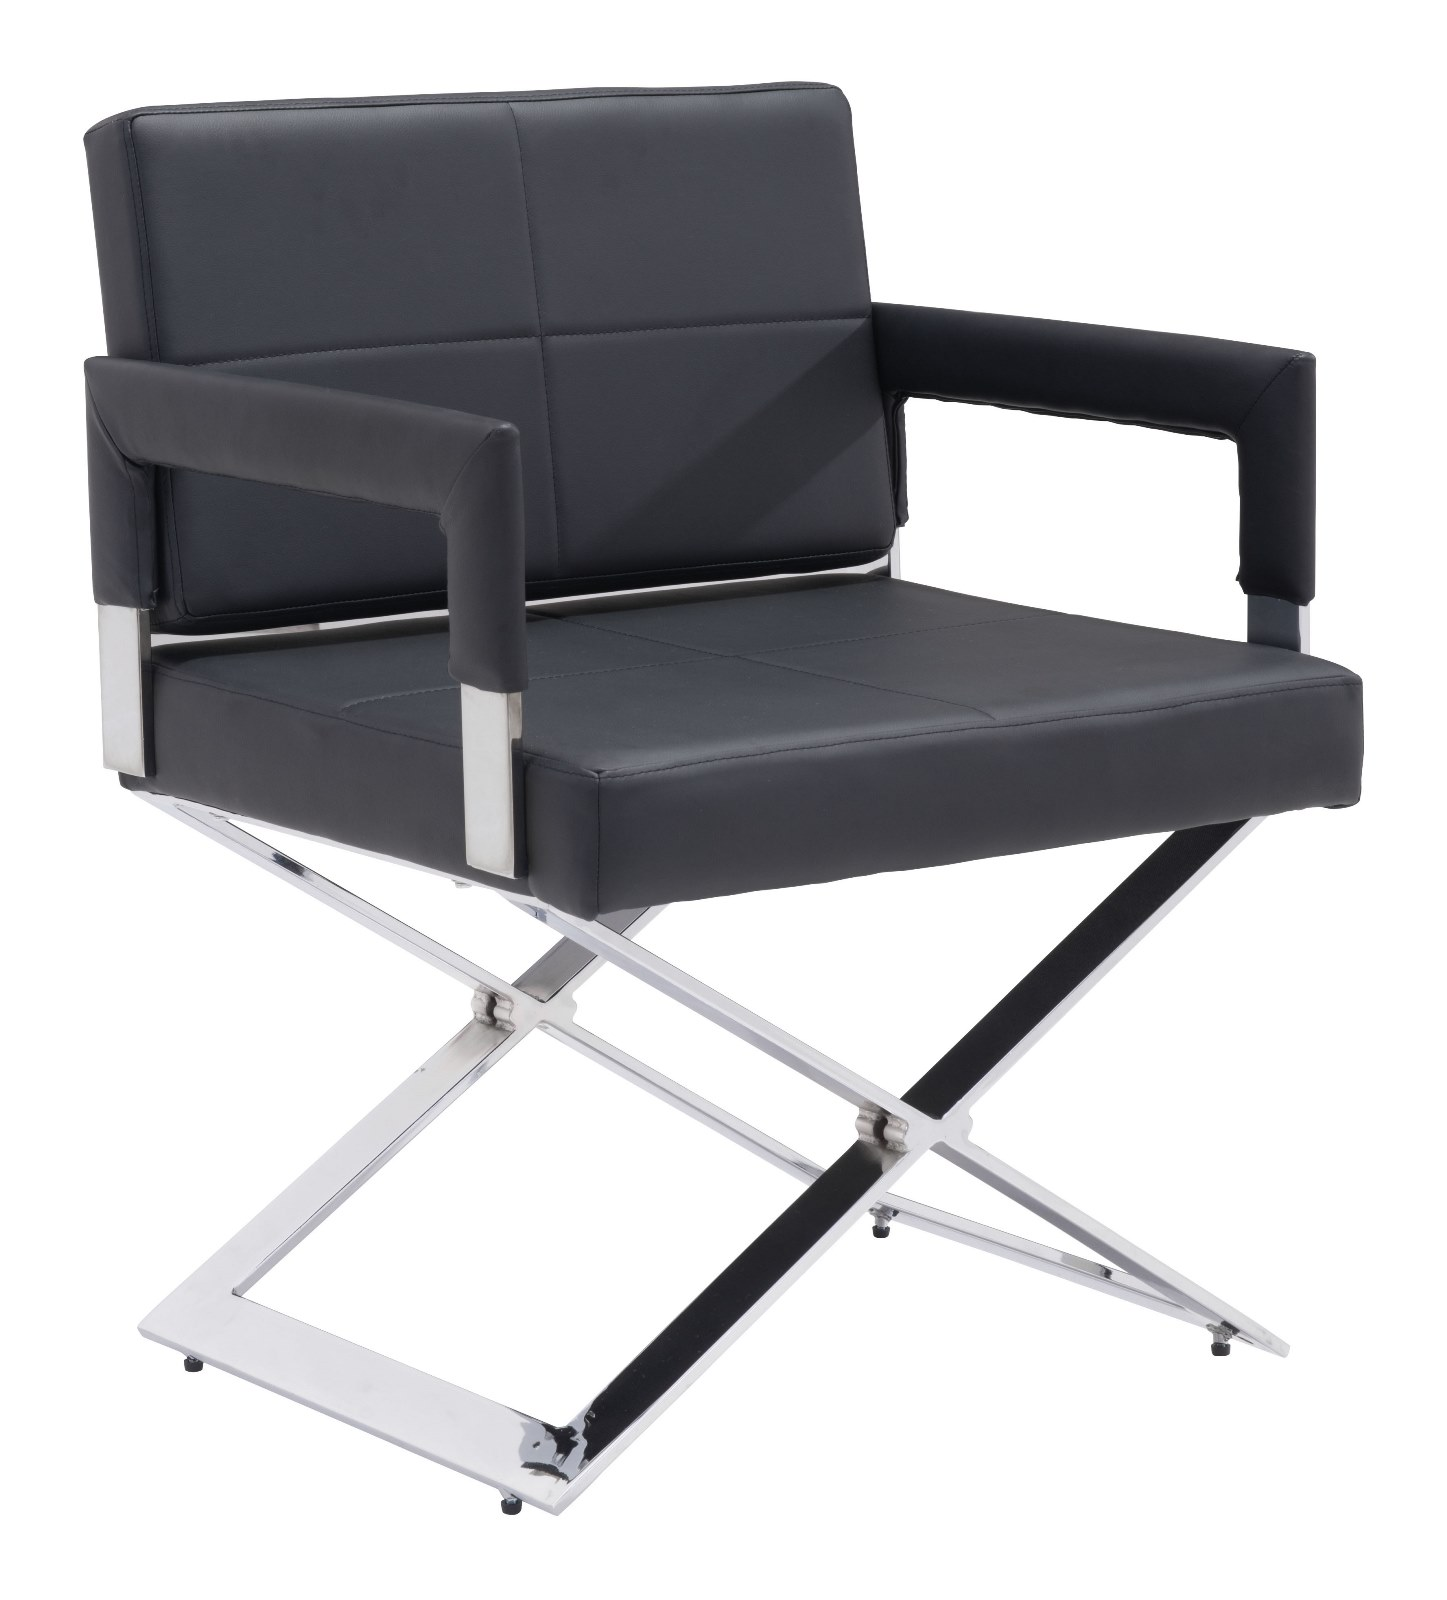 Modern Contemporary Dining Chair, Black, Faux Leather